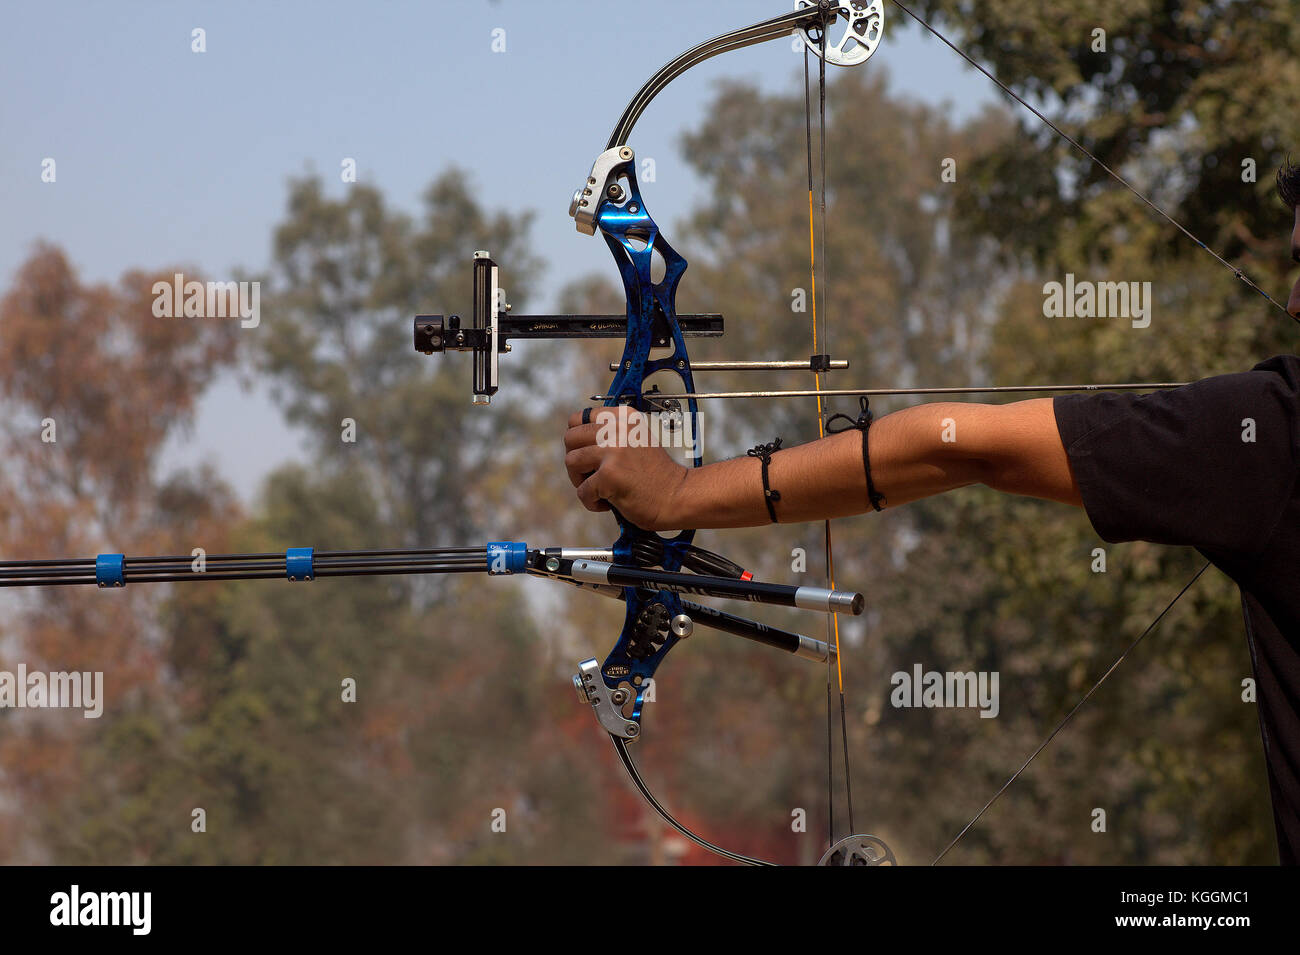 archers-at-an-archery-contest-in-the-university-campus-KGGMC1.jpg